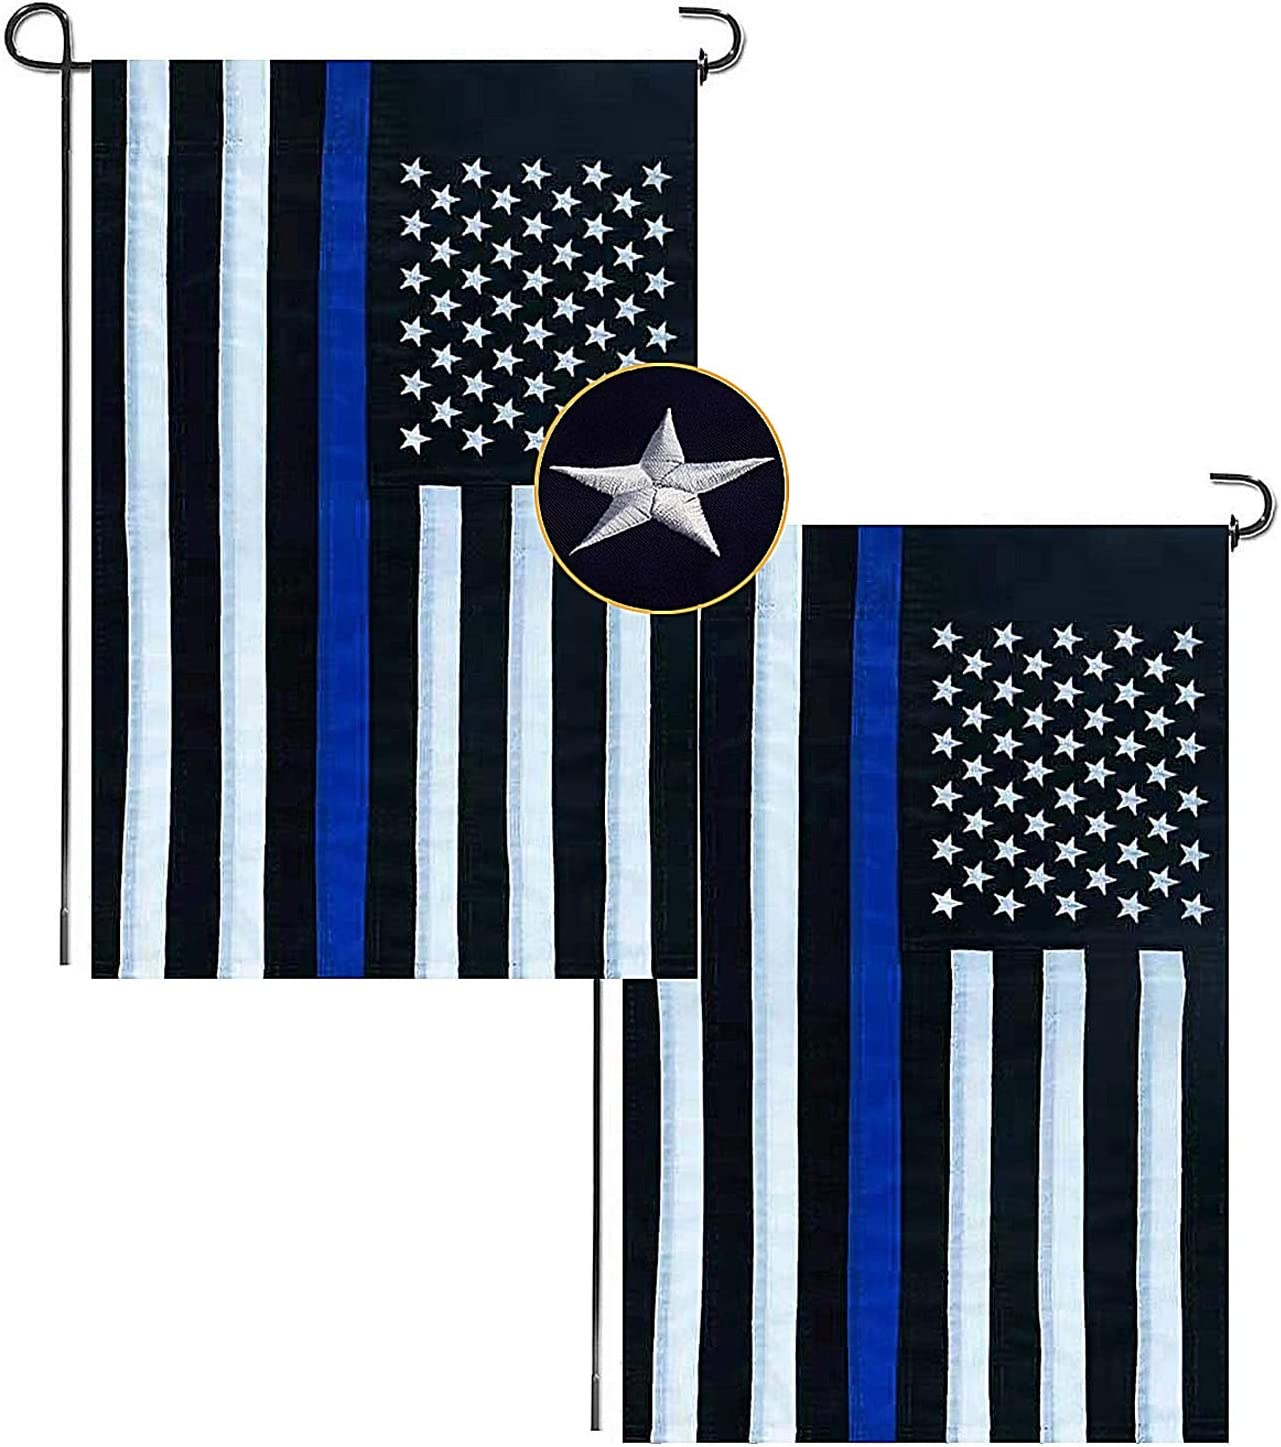 12'' × 18'' Thin Blue Line USA Flag with Embroidered Stars, Sewn Stripes, Black White and Blue American Police Flag Honoring Law Enforcement